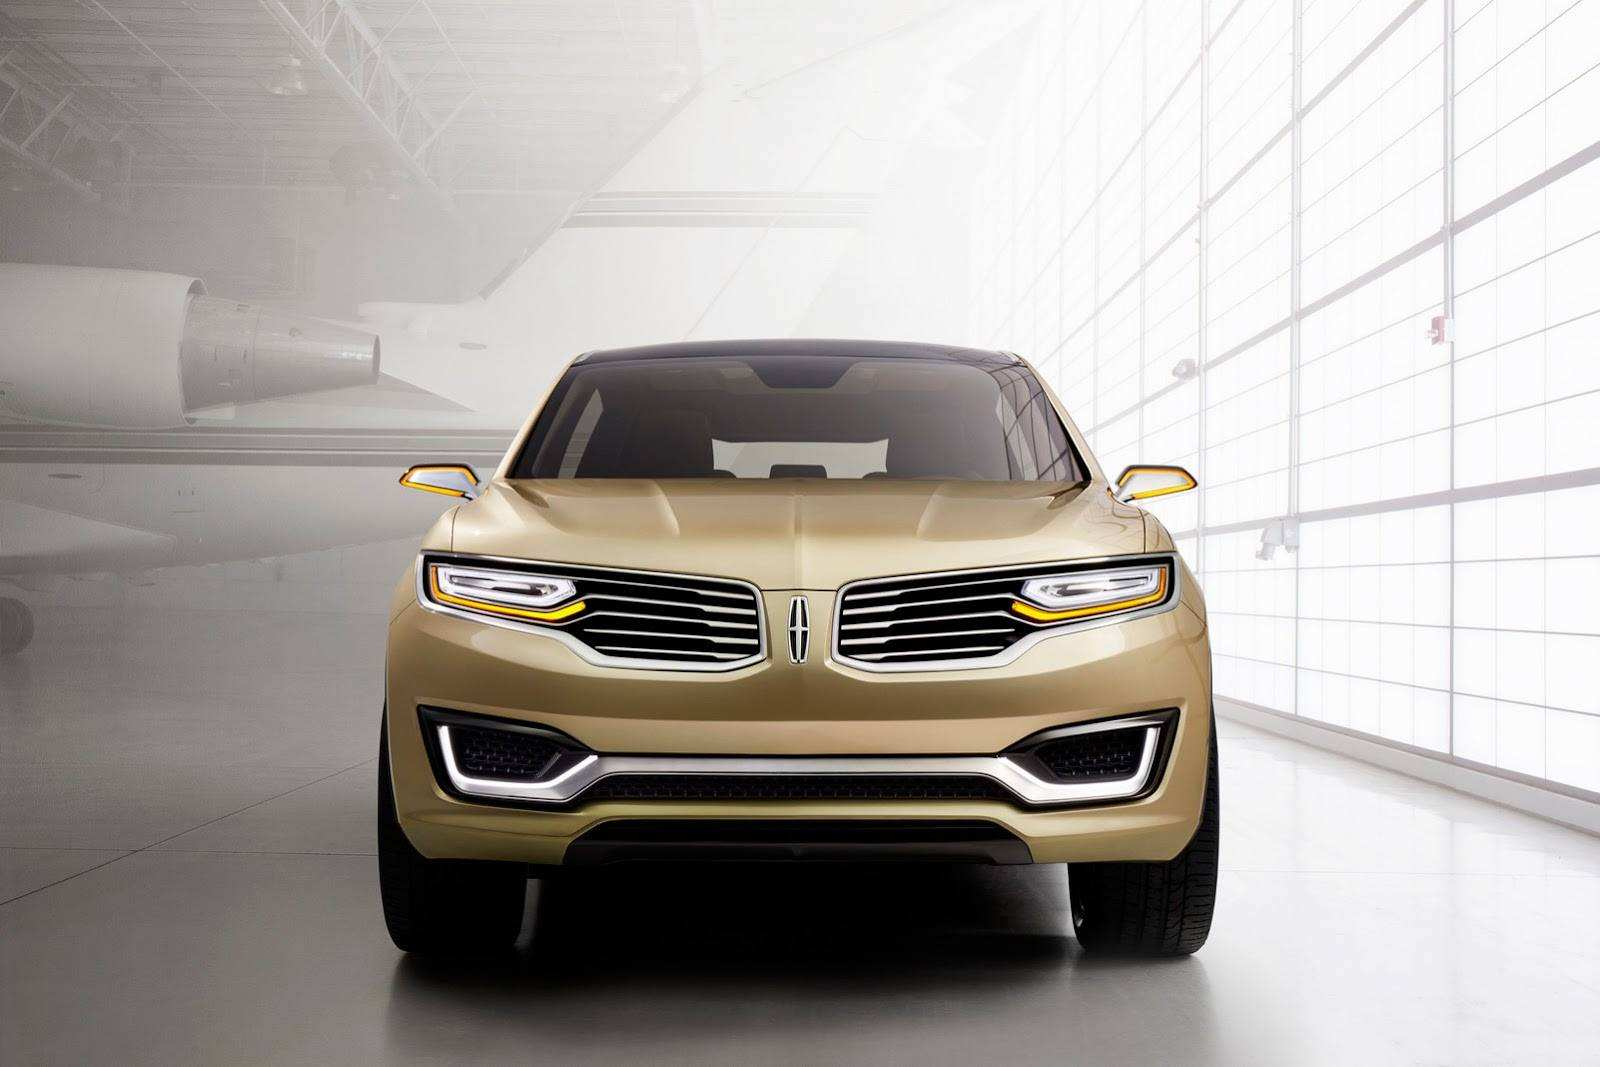 44 New 2020 Lincoln Mkx At Beijing Motor Show Redesign And Review